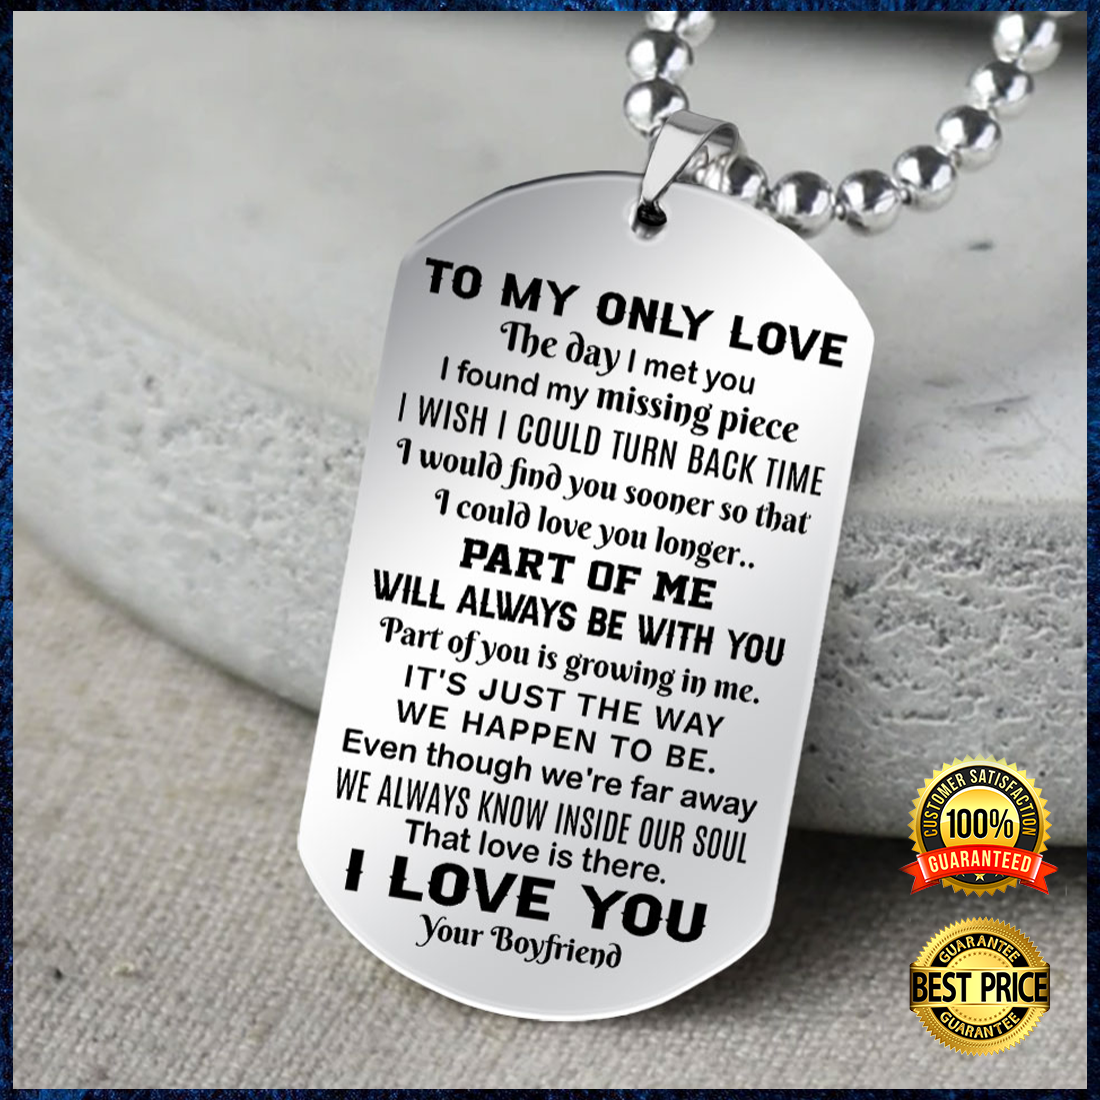 To my only love the day i met you i found my missing piece dog tag 1 4